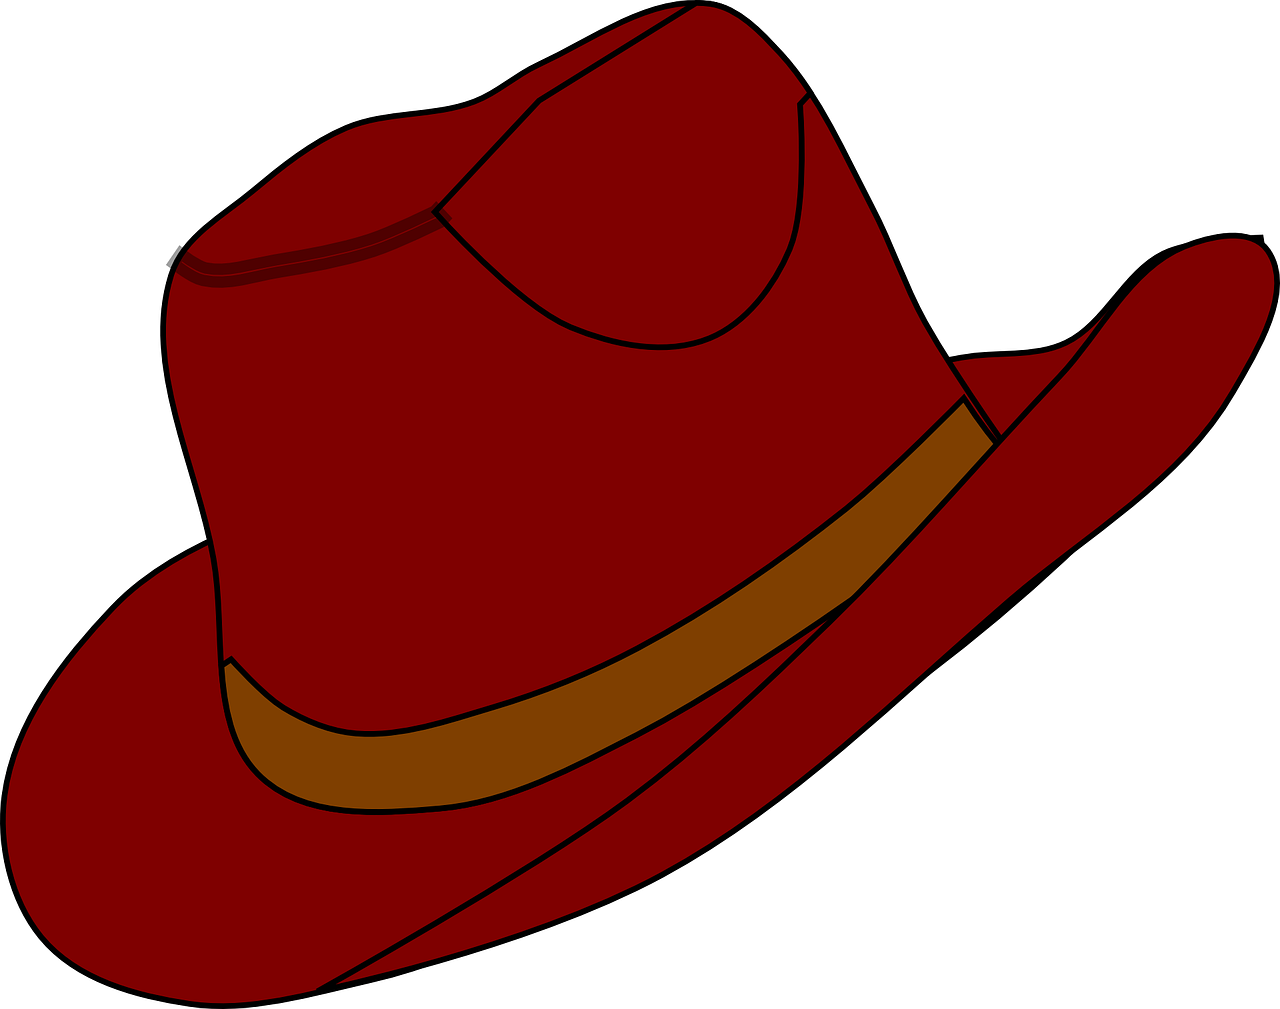 Hat Images Free For Commercial Use